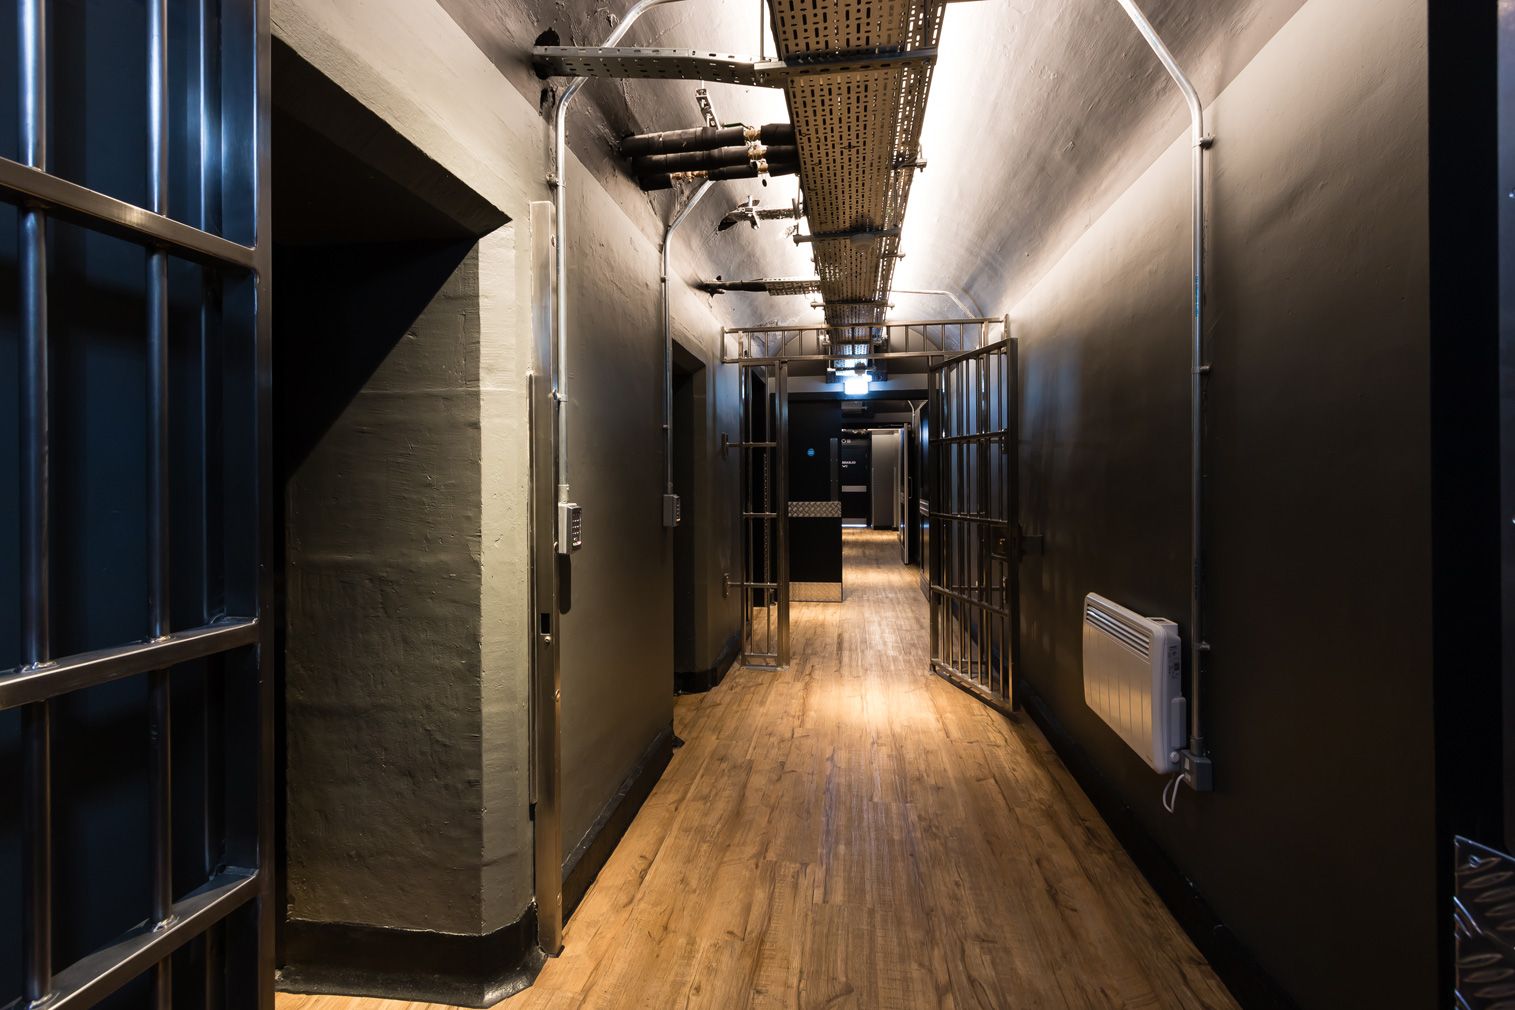 The Court is the latest addition to the Code Pod Hostels portfolio